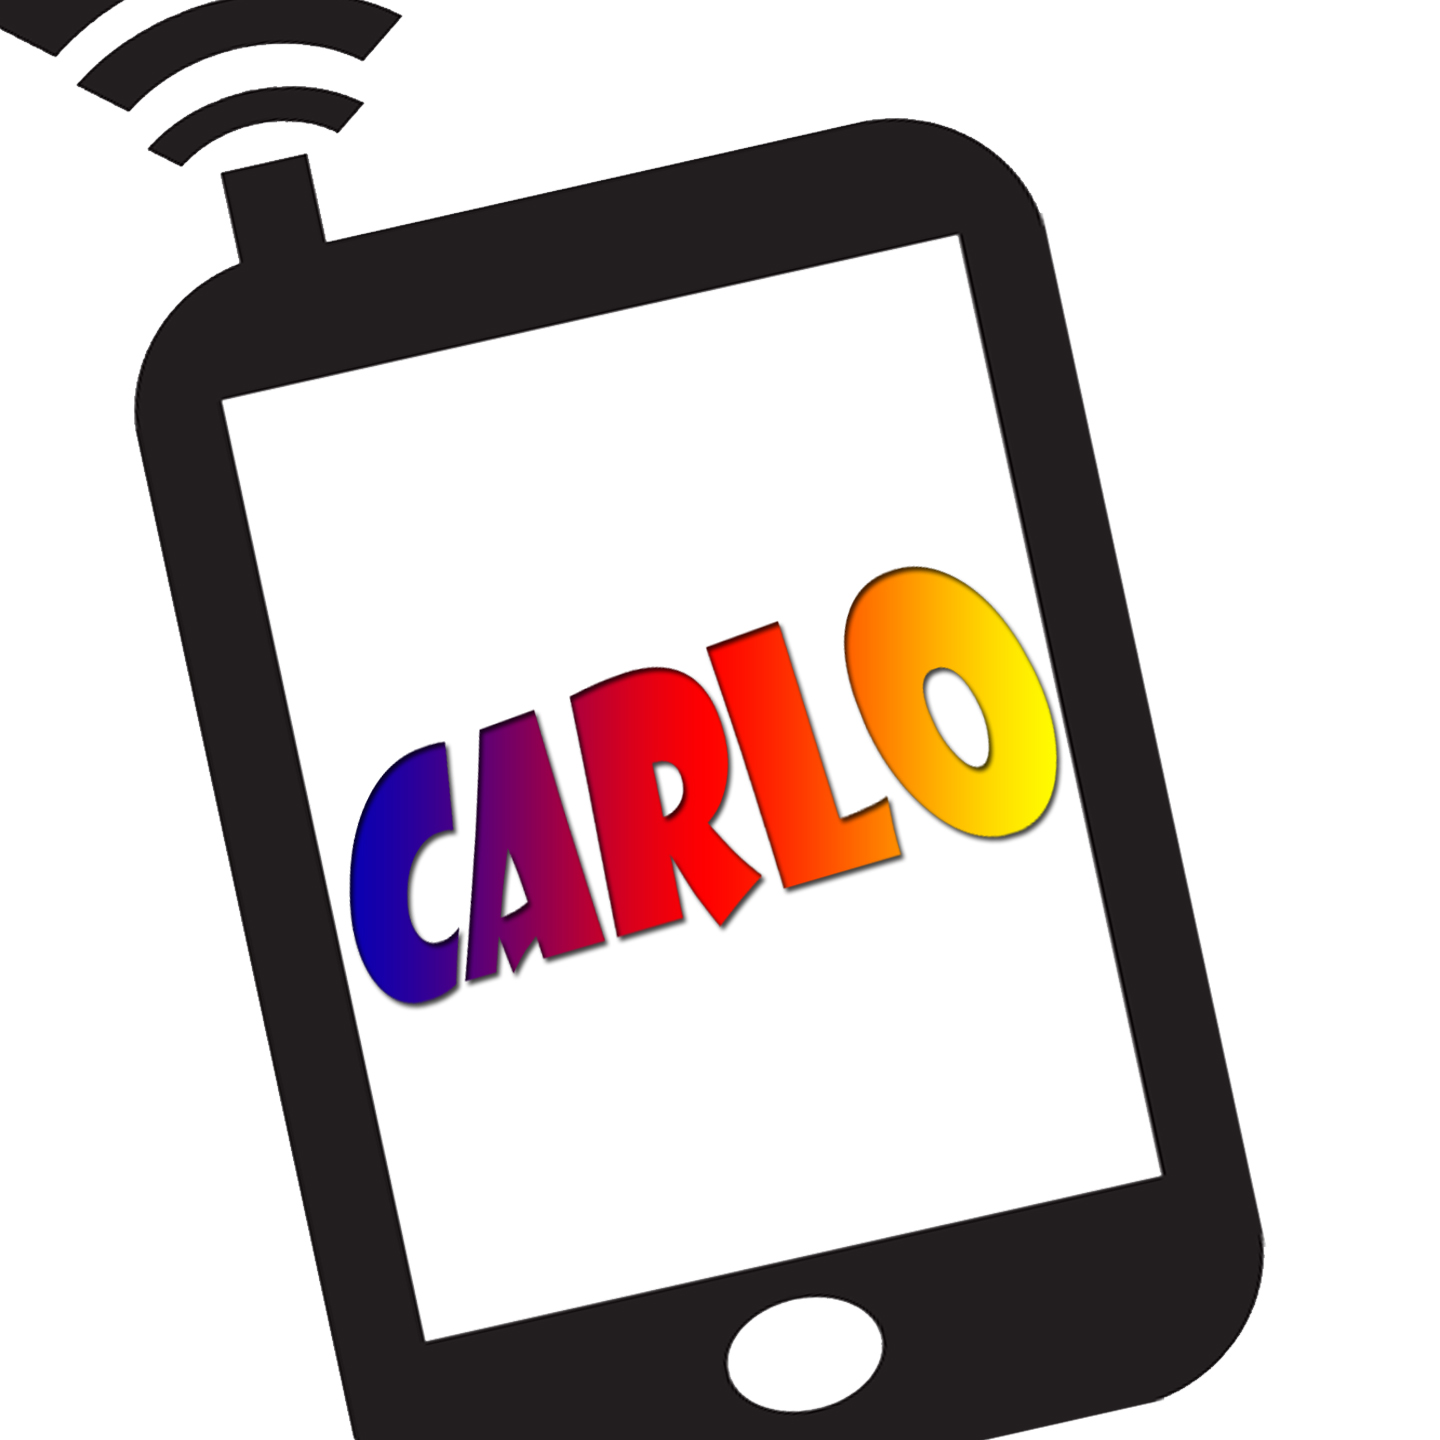 Carlo is calling you